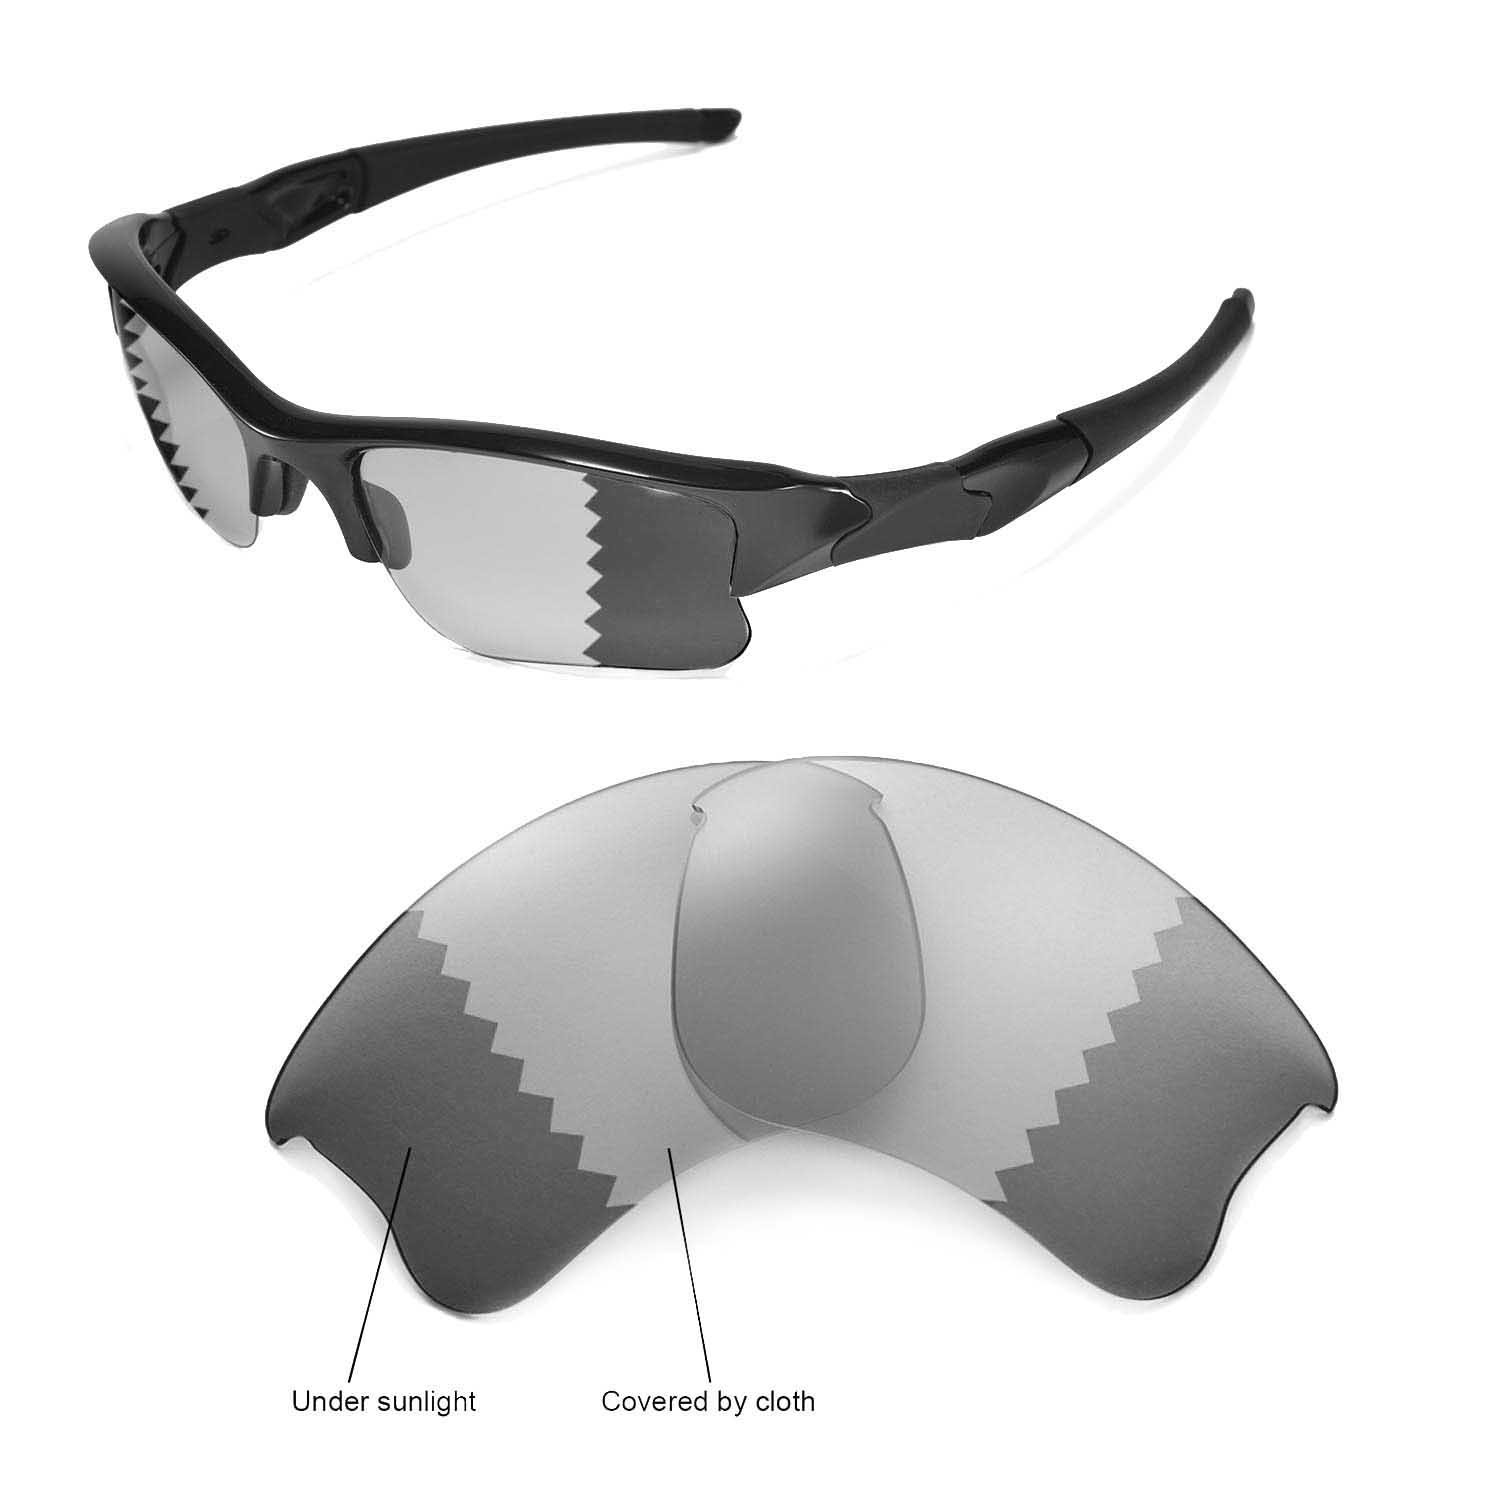 dba07d3dac6ed Walleva Replacement Lenses for Oakley Flak Jacket XLJ Sunglasses - Multiple  Options (Transition photochromic